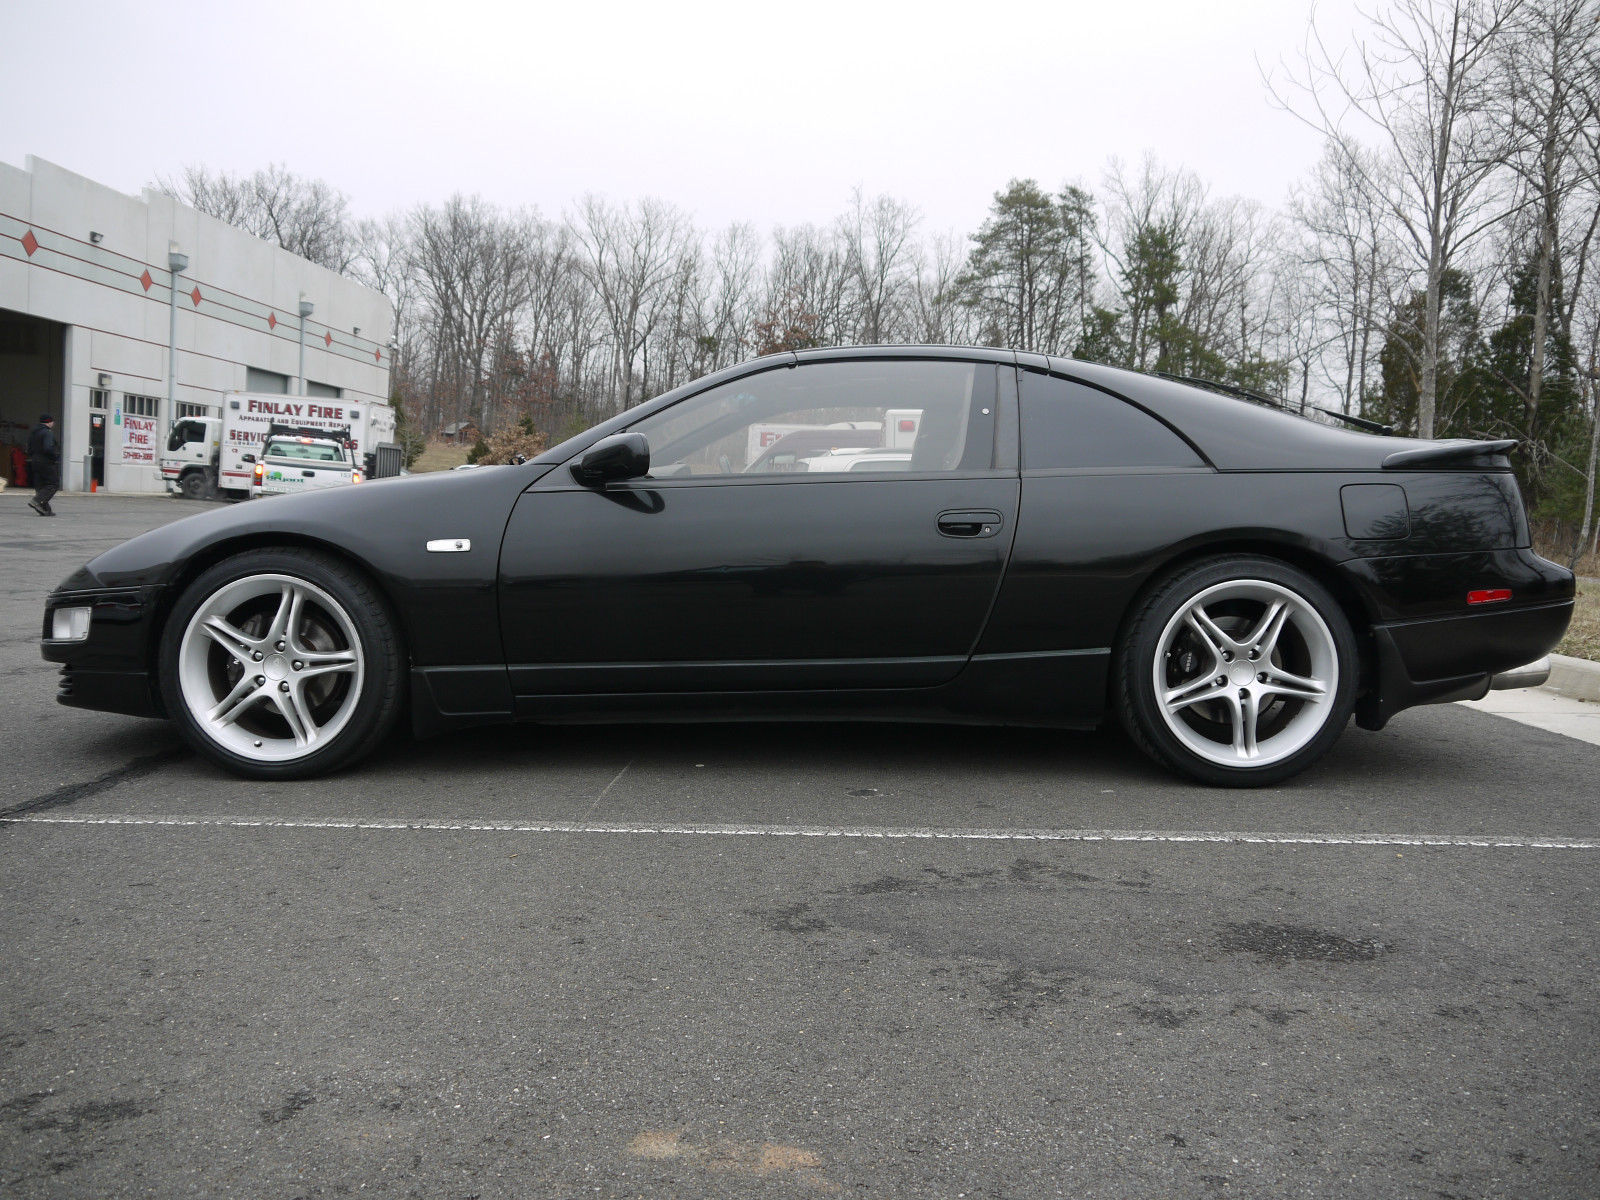 1989 nissan 300zx twin turbo fairlady z z32 tt jdm rhd imported from japan classic nissan. Black Bedroom Furniture Sets. Home Design Ideas